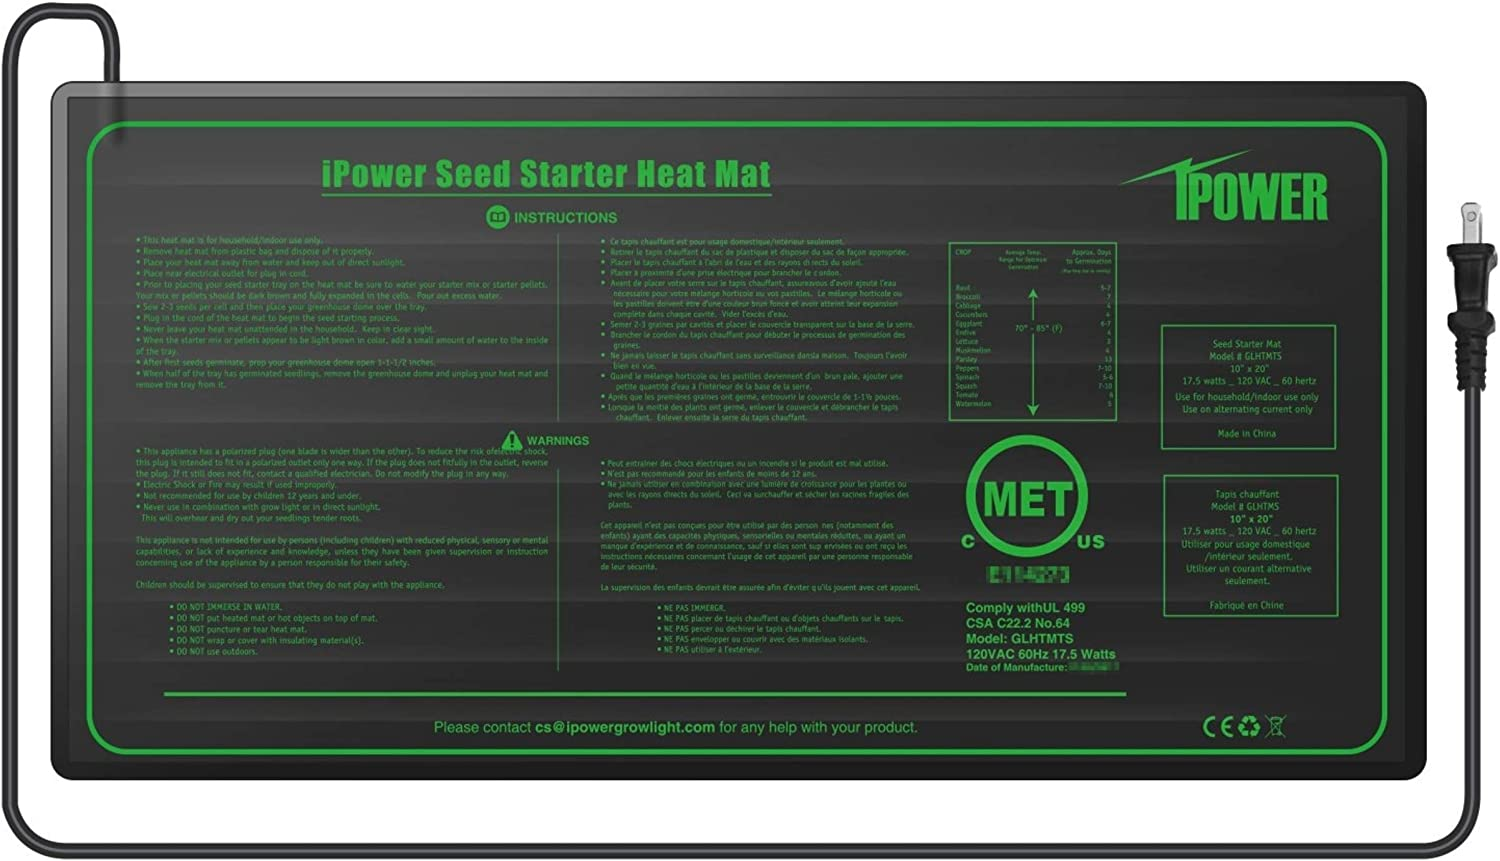 "iPower GLHTMTS-A 10"" x 20.5"" Waterproof Durable Seedling Heat Mat Warm Hydroponic Plant for Indoor Gardening Germination Starting, Black"